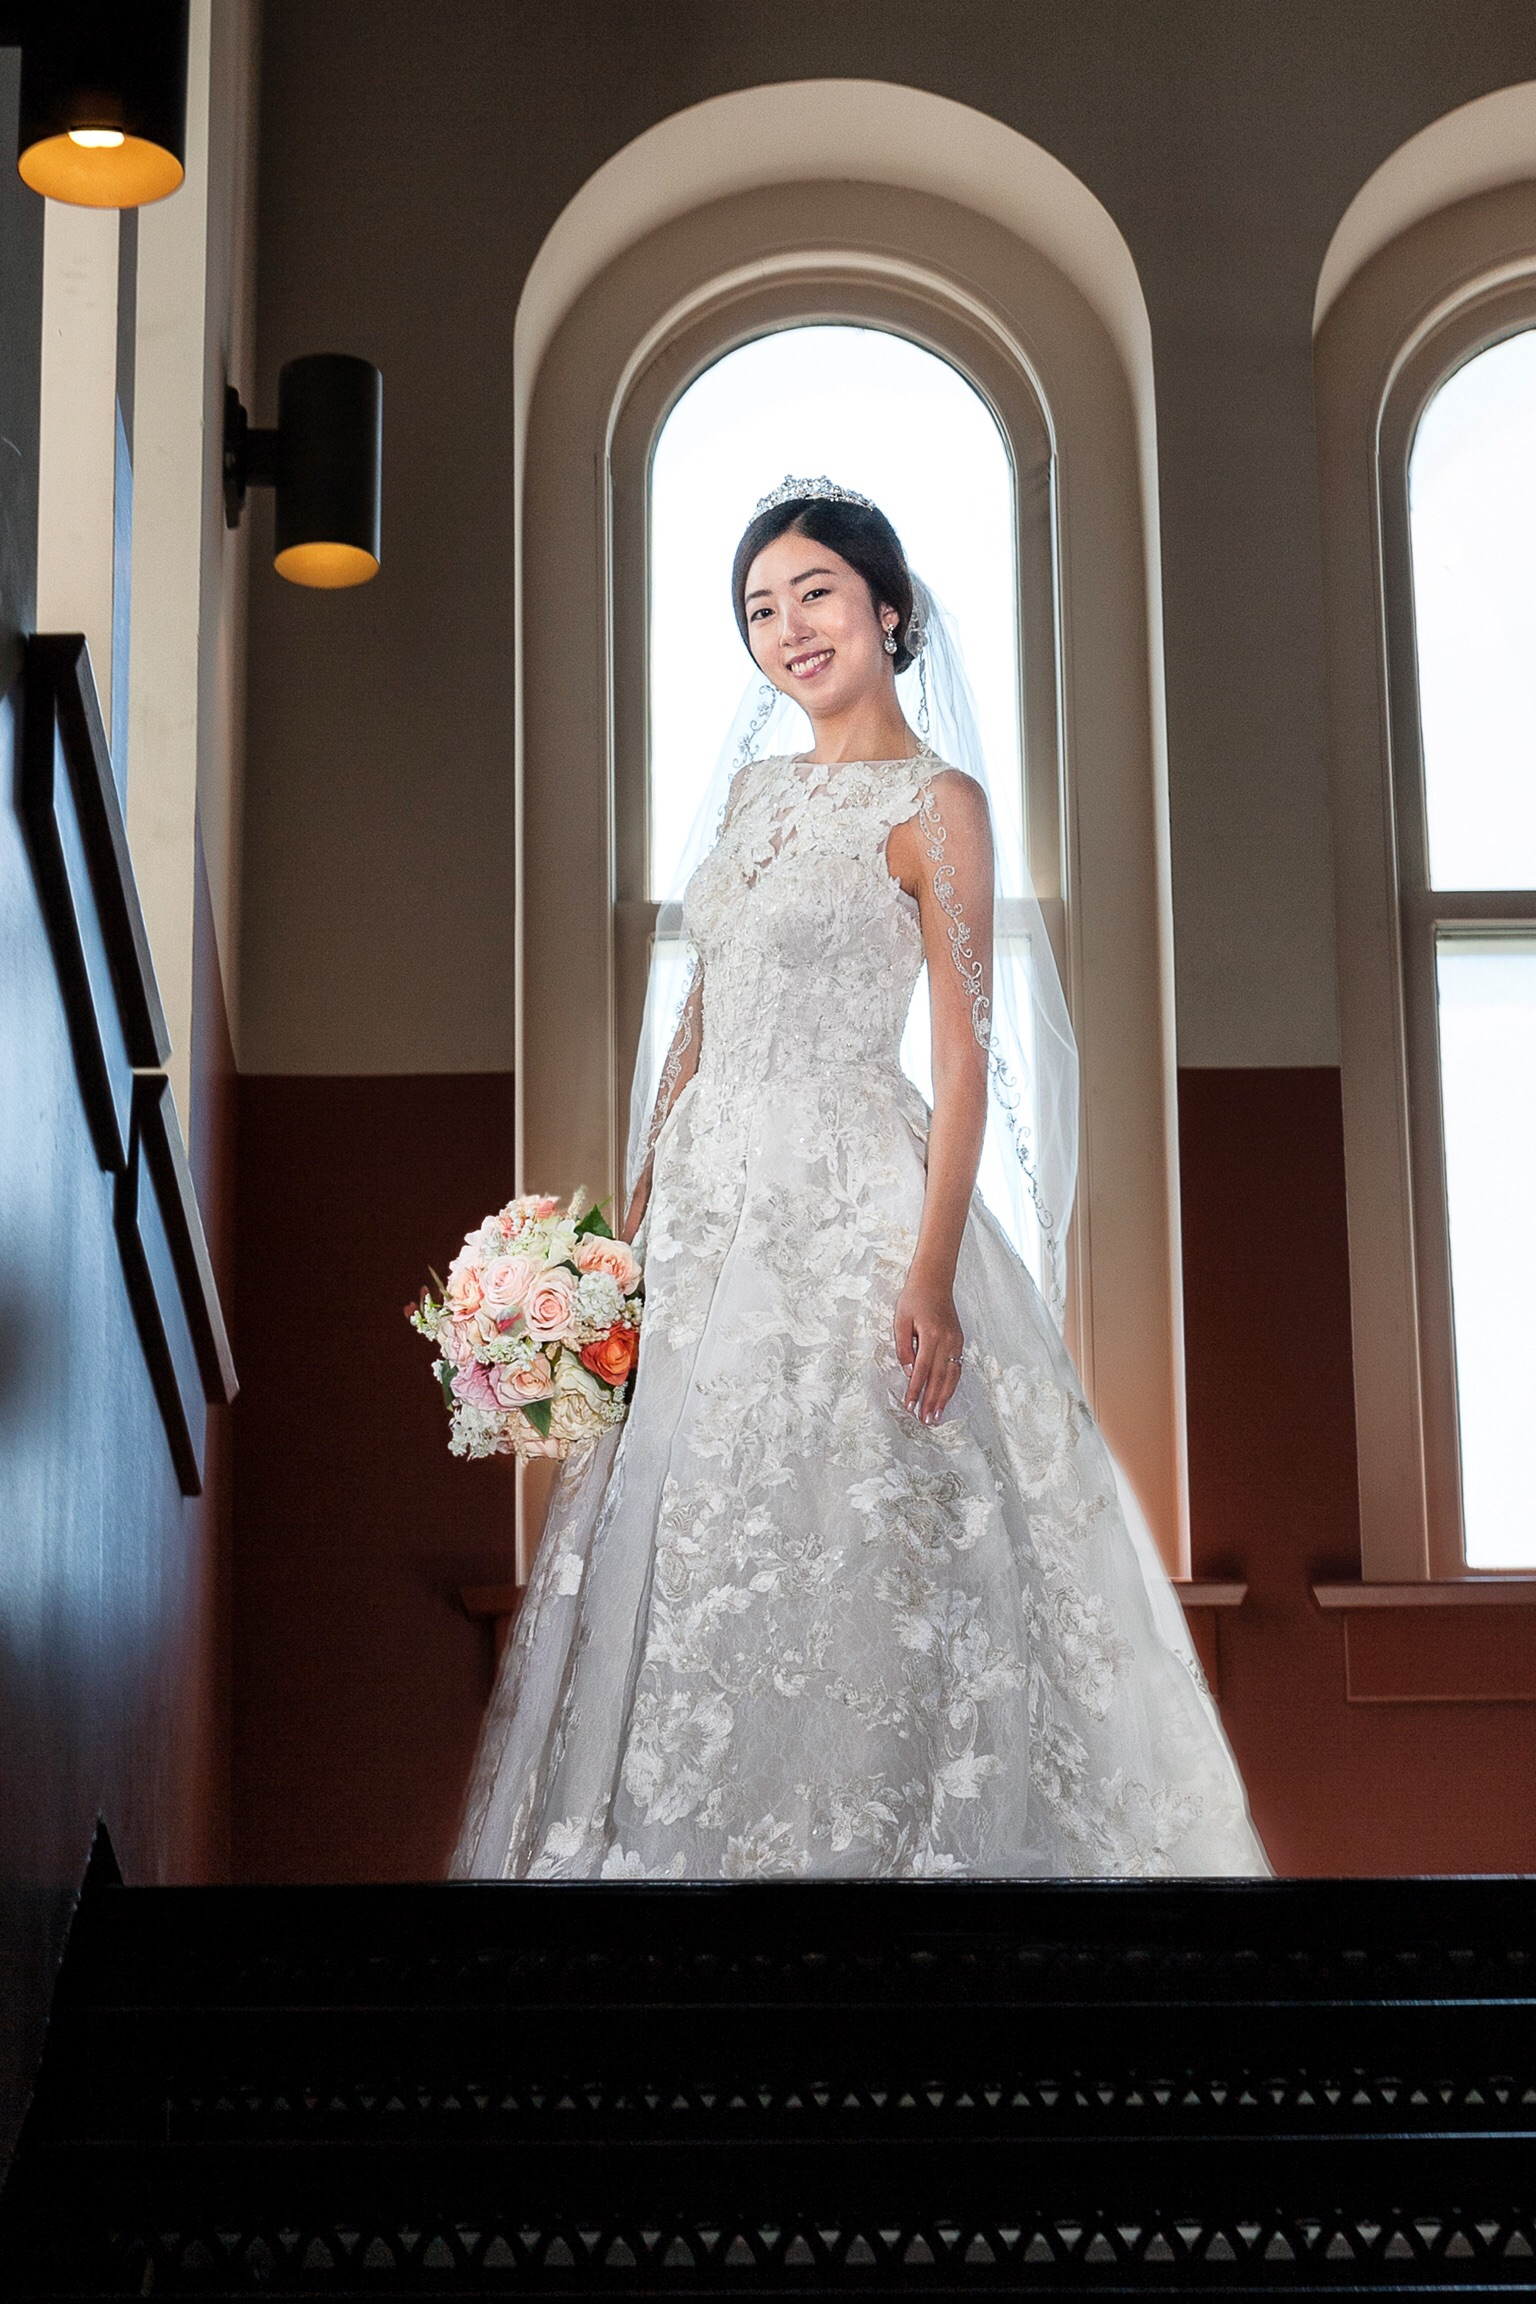 louisville wedding photography, bride on stairs, wedding gown, bouquet, old medical school building, louisville